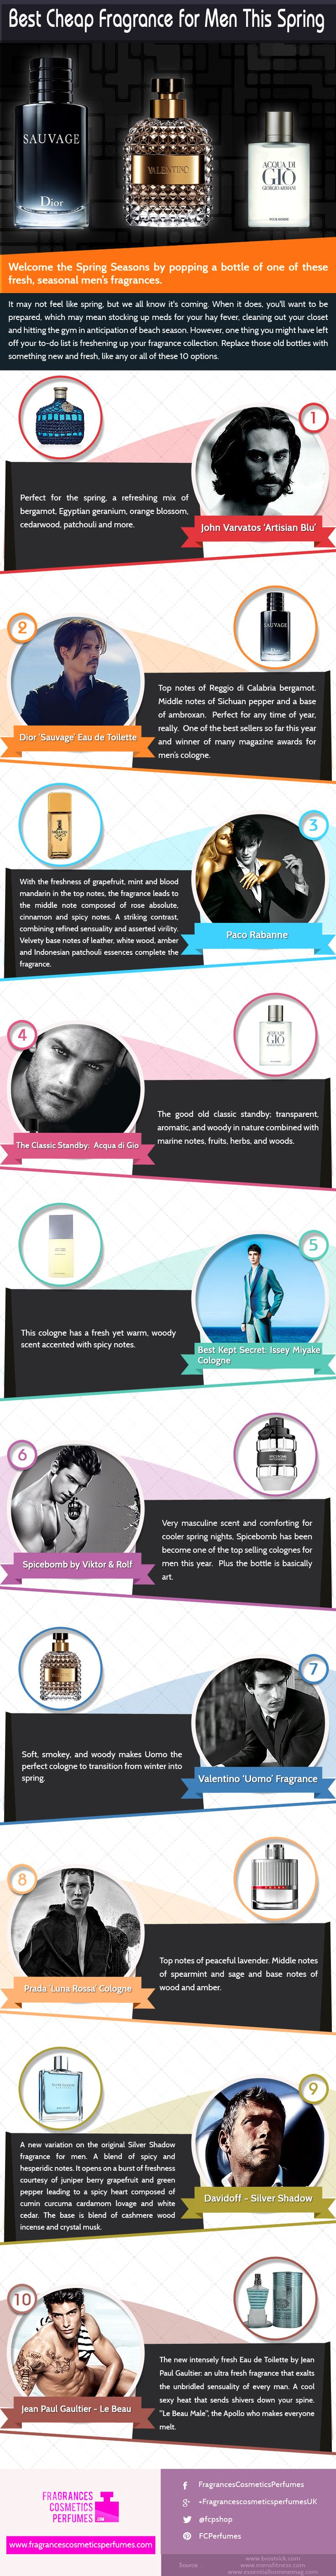 Best Cheap Fragrance for Men This Spring - Free Info Graphic Post